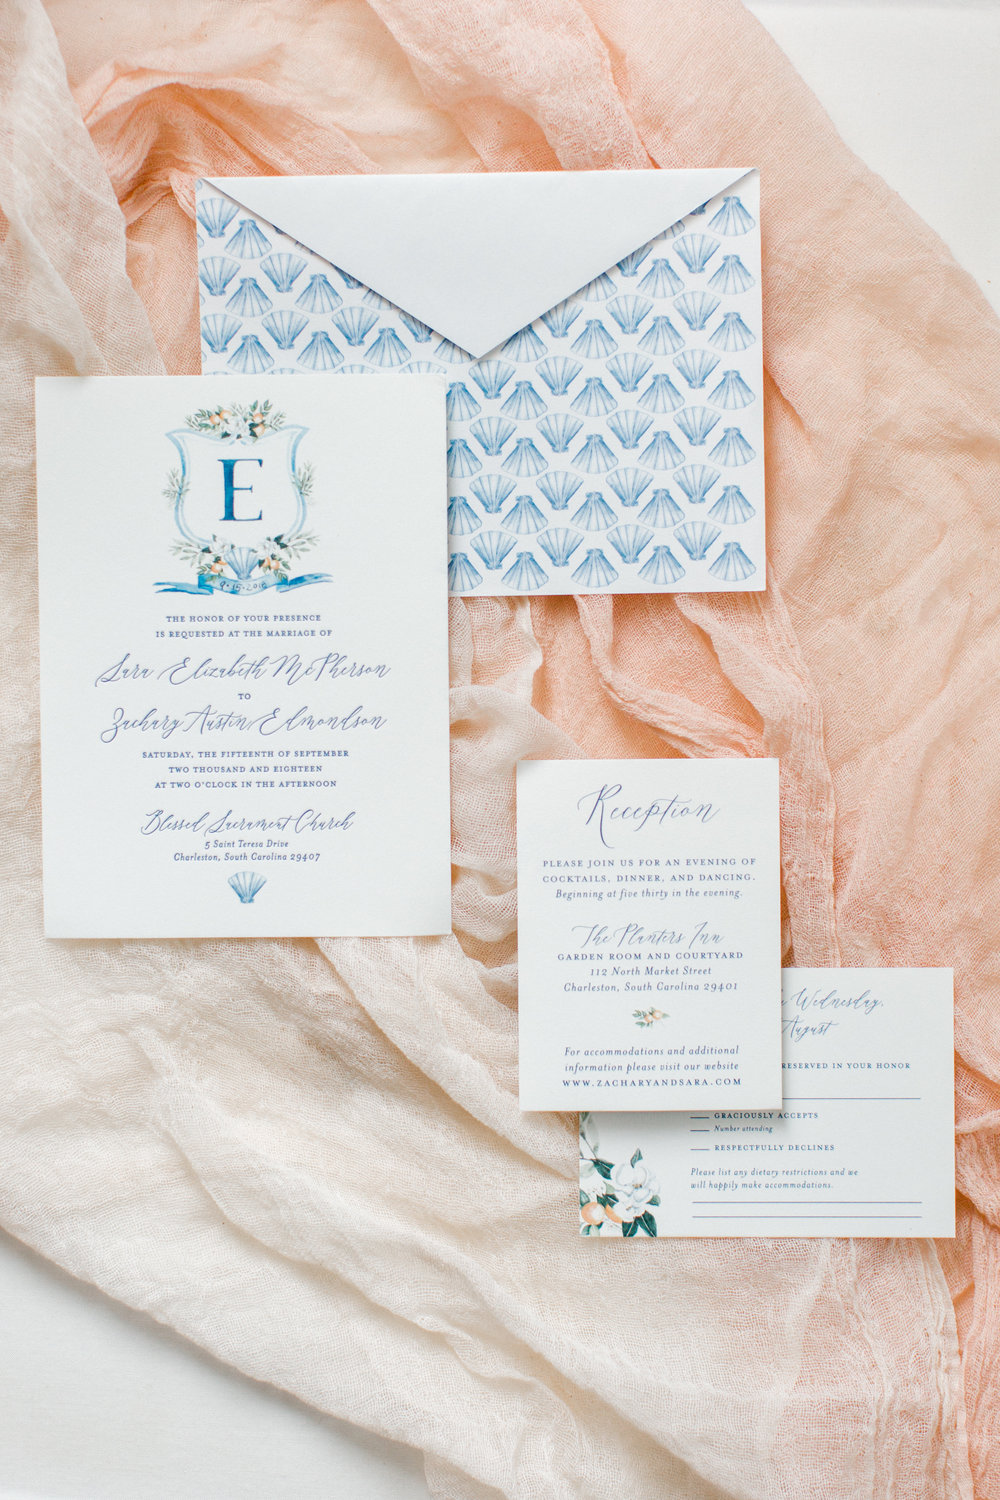 blush invitation suite by sas-e ink